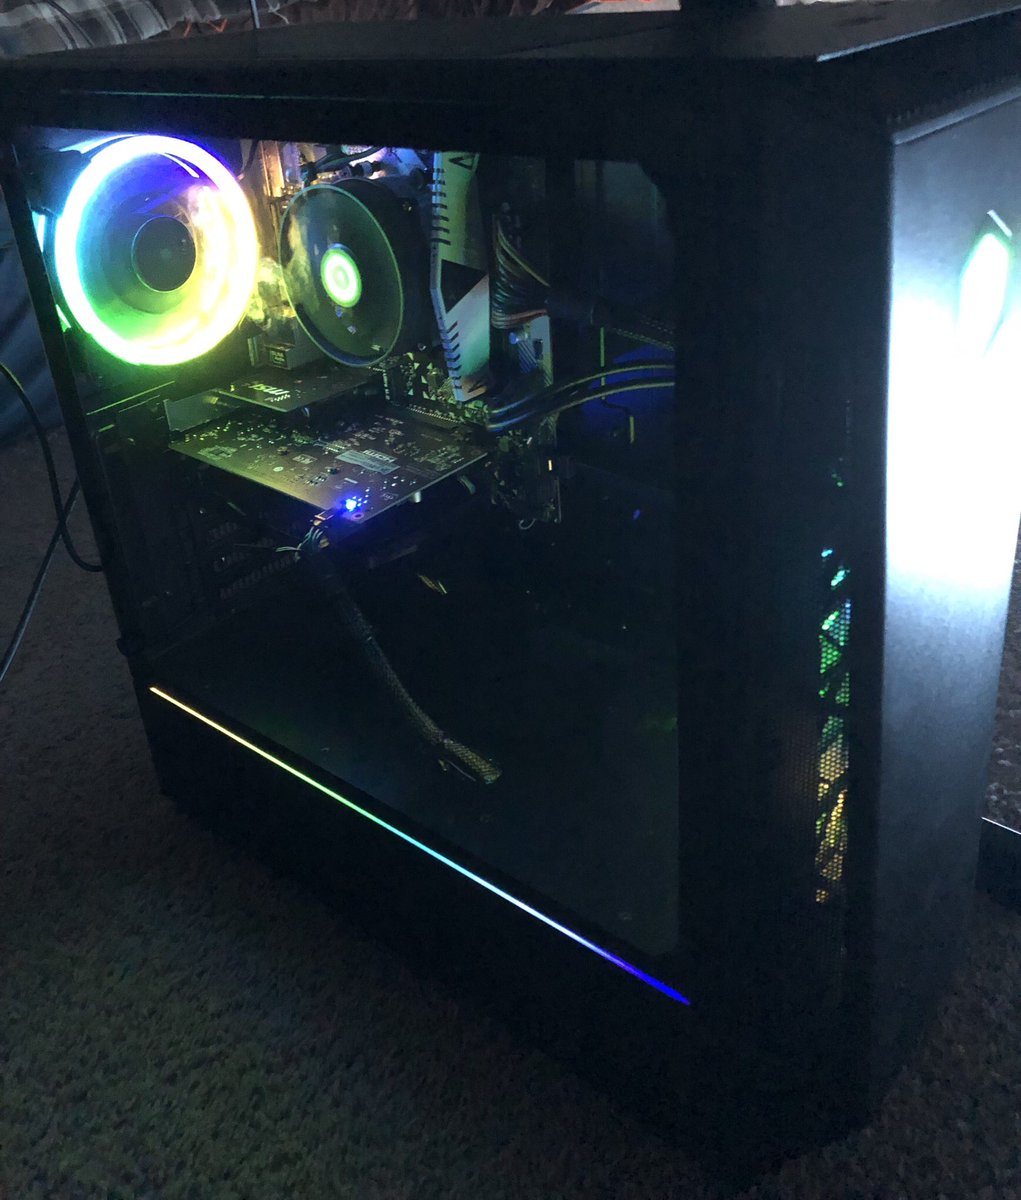 I absolutely love my pc build!!     #pcos #pca #pcgames #pcosweightloss #pcgame #pcb #pcmr #PCGamers #pcsetup #pch #pcbuild #pcosfighter #pcc #pct #pcakubueze #pcy #pcapro #pcgaming101 #pcbuilds #pcmodding #pcaarmy #pcmod #pcrepair #pcoswarrior #pcaskin #pchardware #Gaming #gamerpic.twitter.com/WWjzCdJ3zb